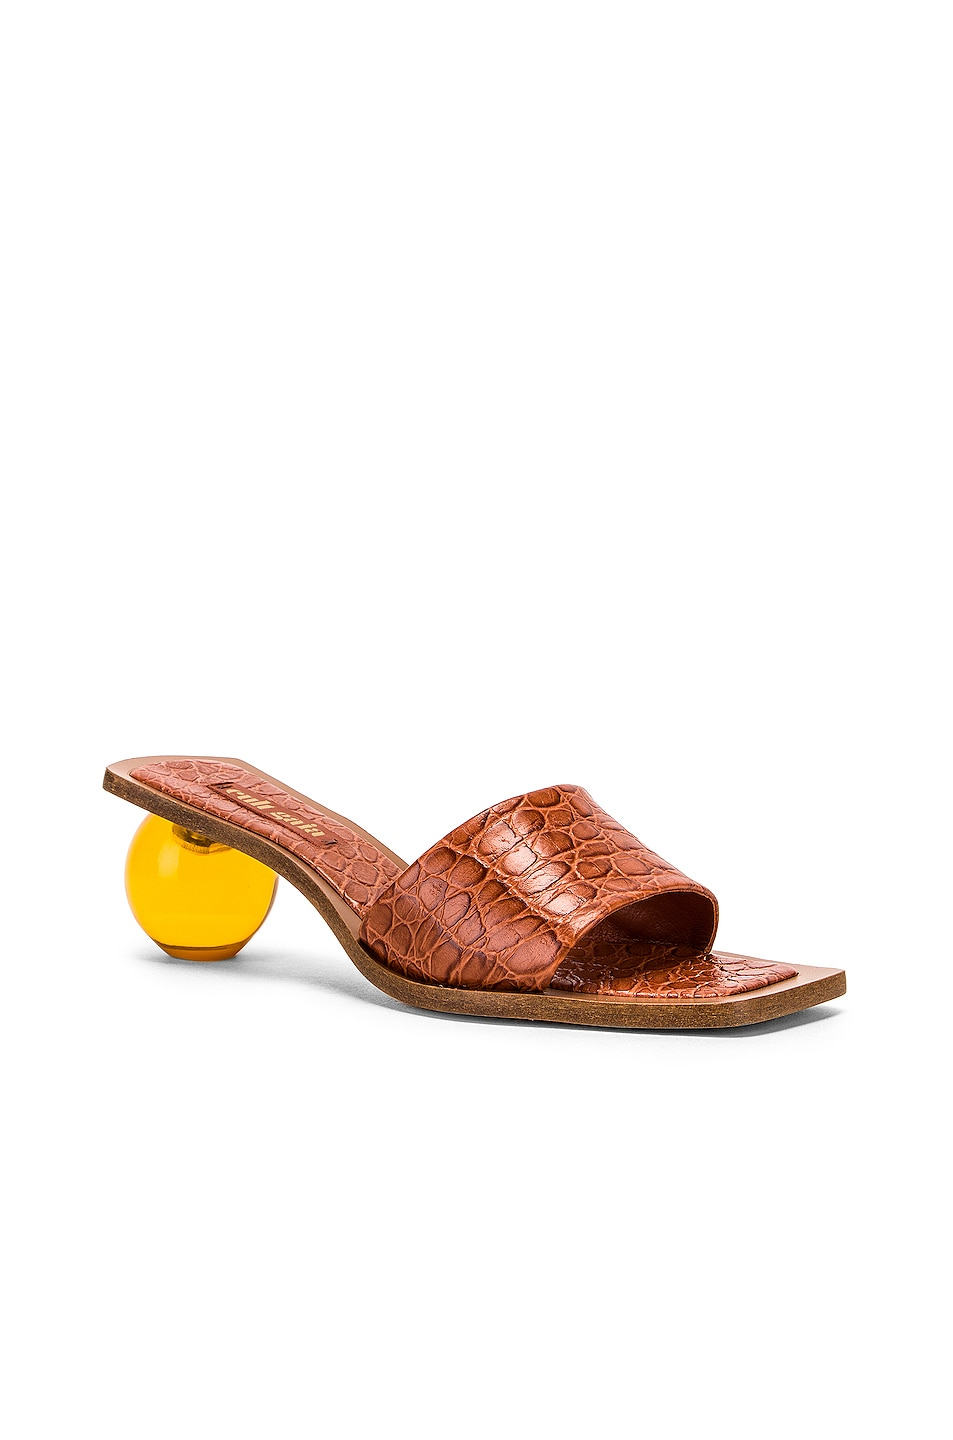 Image 2 of Cult Gaia Tao Sandal in Spice